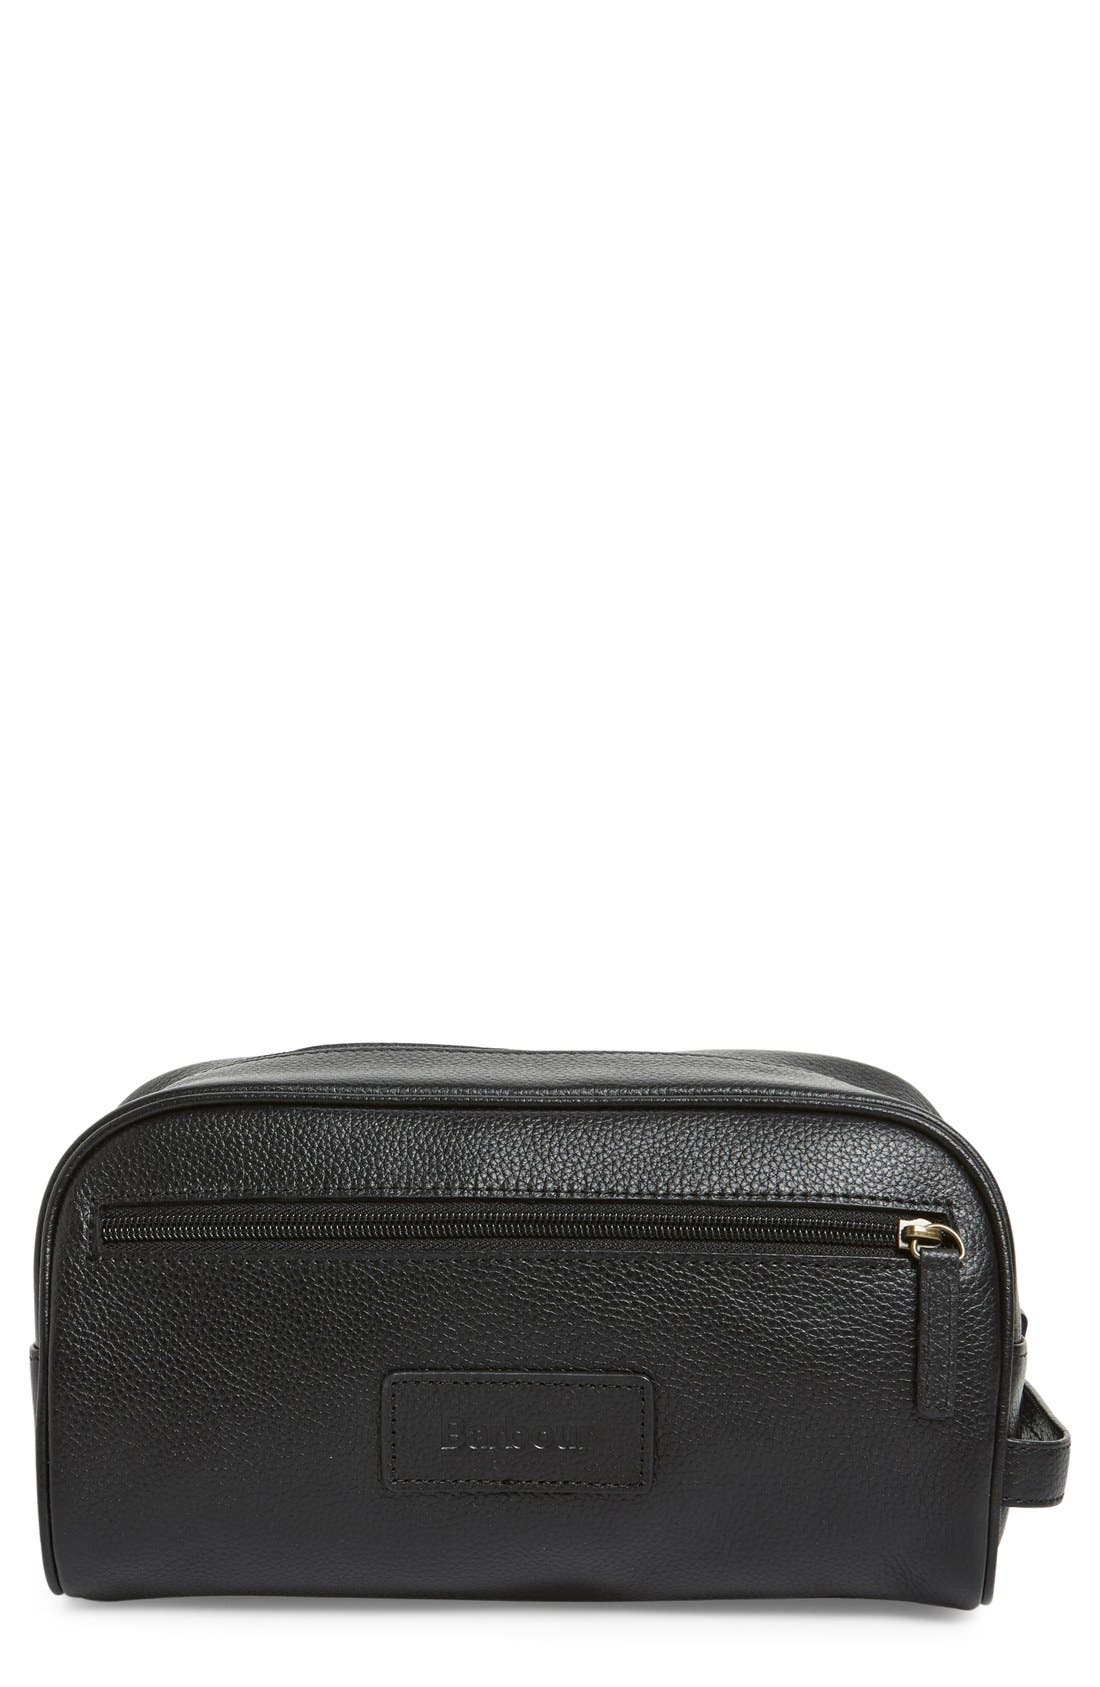 Main Image - Barbour Leather Travel Kit